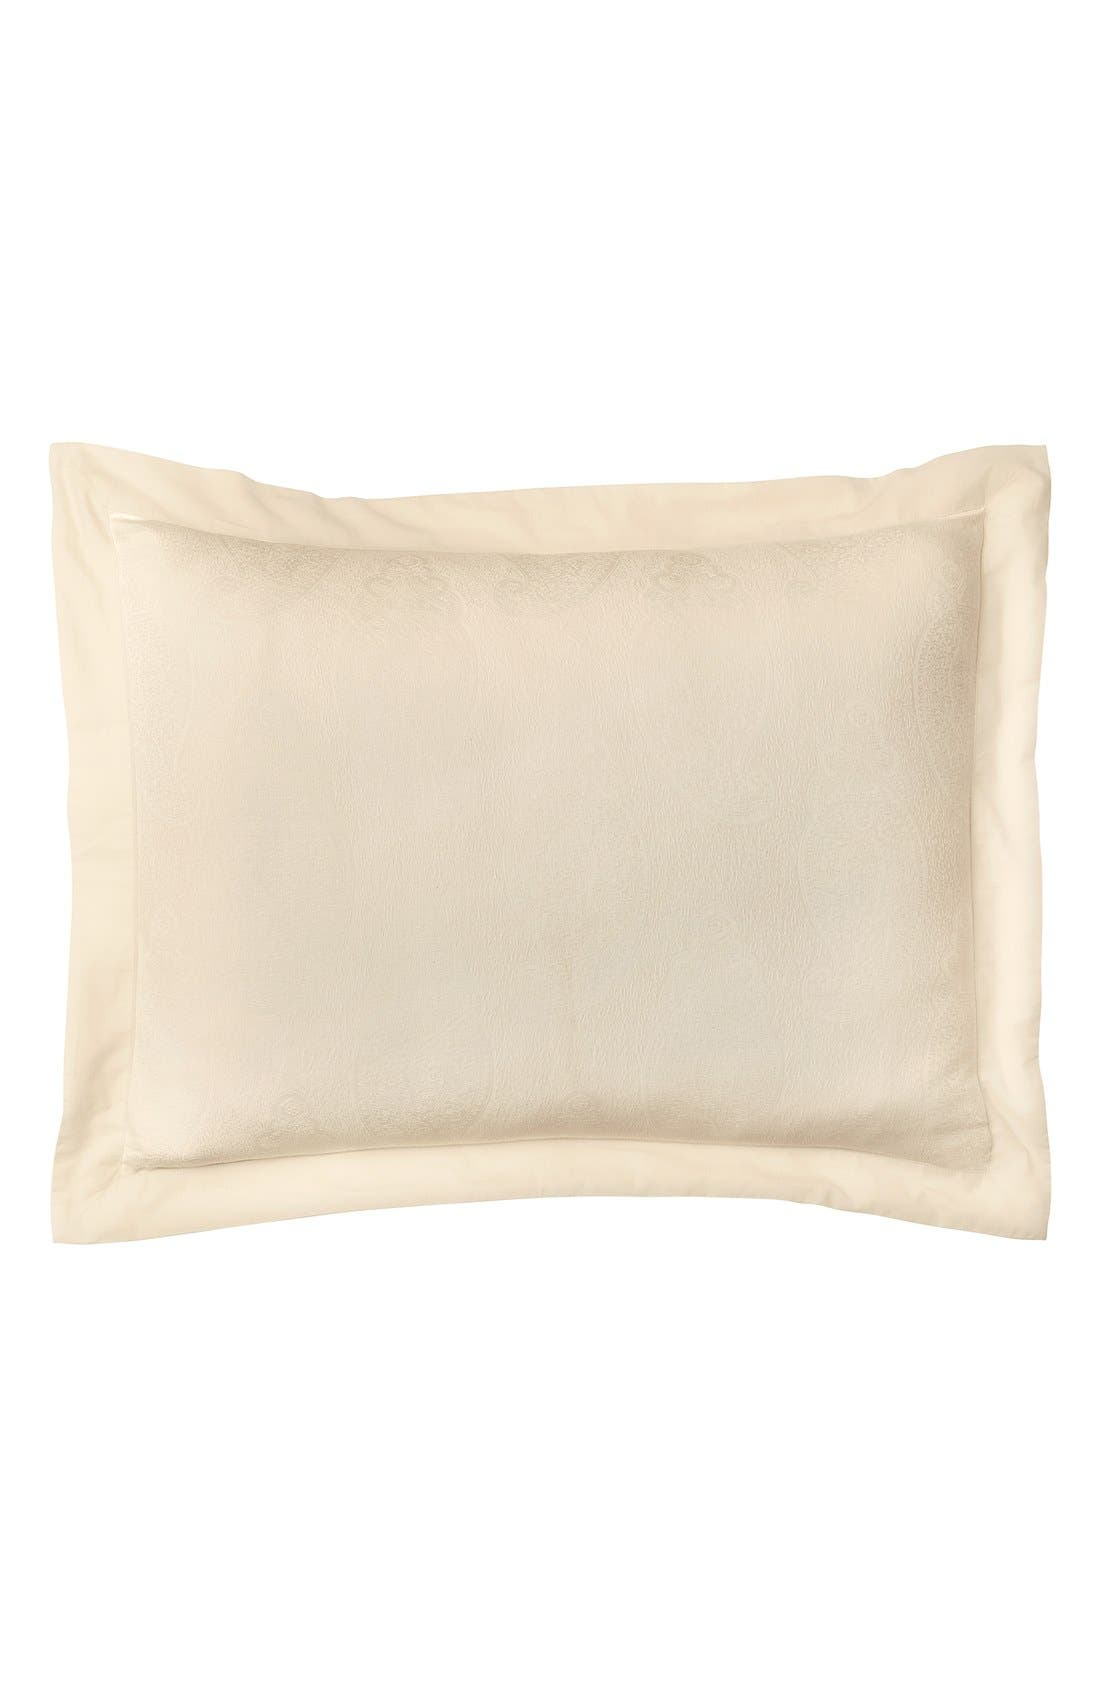 Alternate Image 3  - Welspun USA 'Crowning Touch' Duvet Cover Set